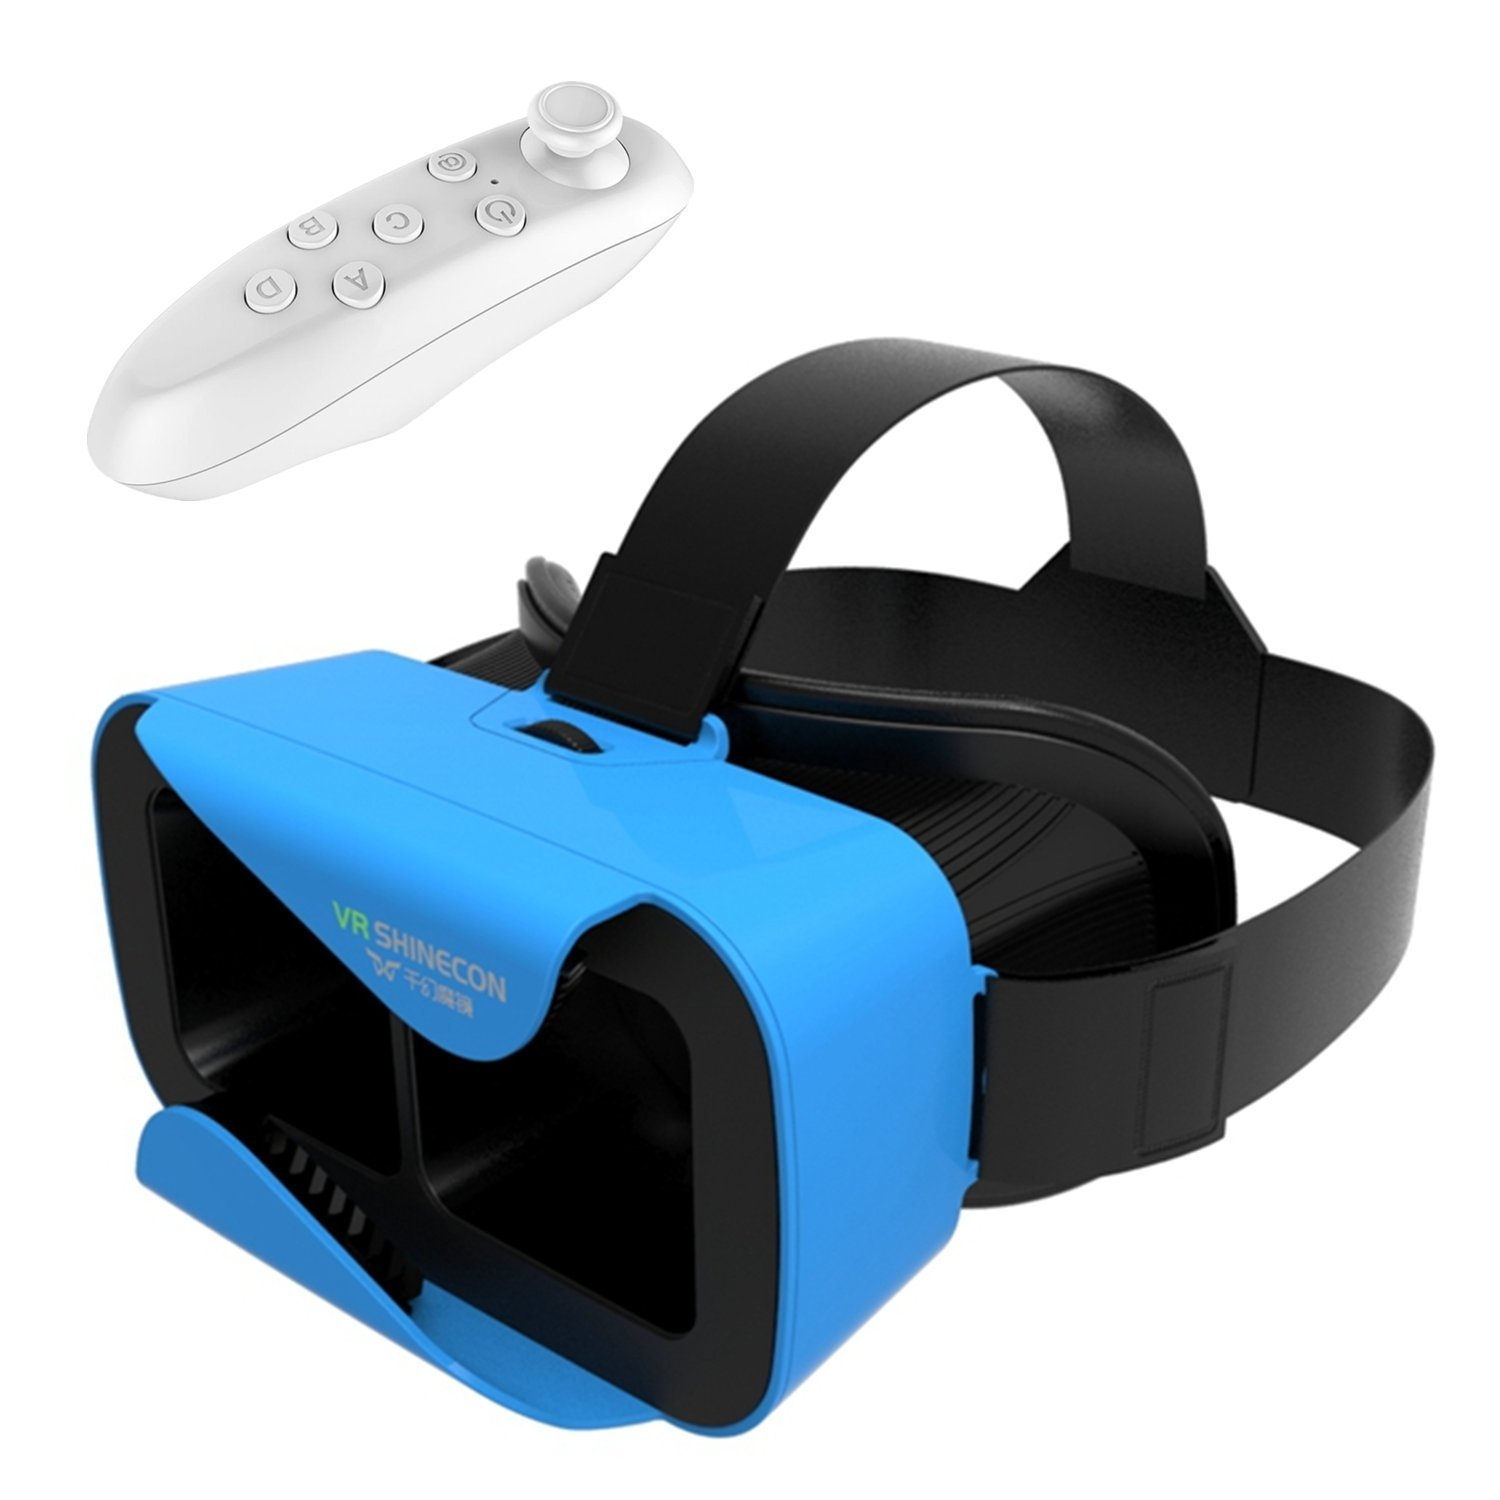 Tsanglight VR Headset, Virtual Reality 3D Glasses VR Helmet Game Video Headset[Newest]+Wireless Remote Controller for IOS iPhone 7/6/6S Plus, Android Samsung S7 Edge/S7[4.7-6.0inch Smart Phone] -Blue